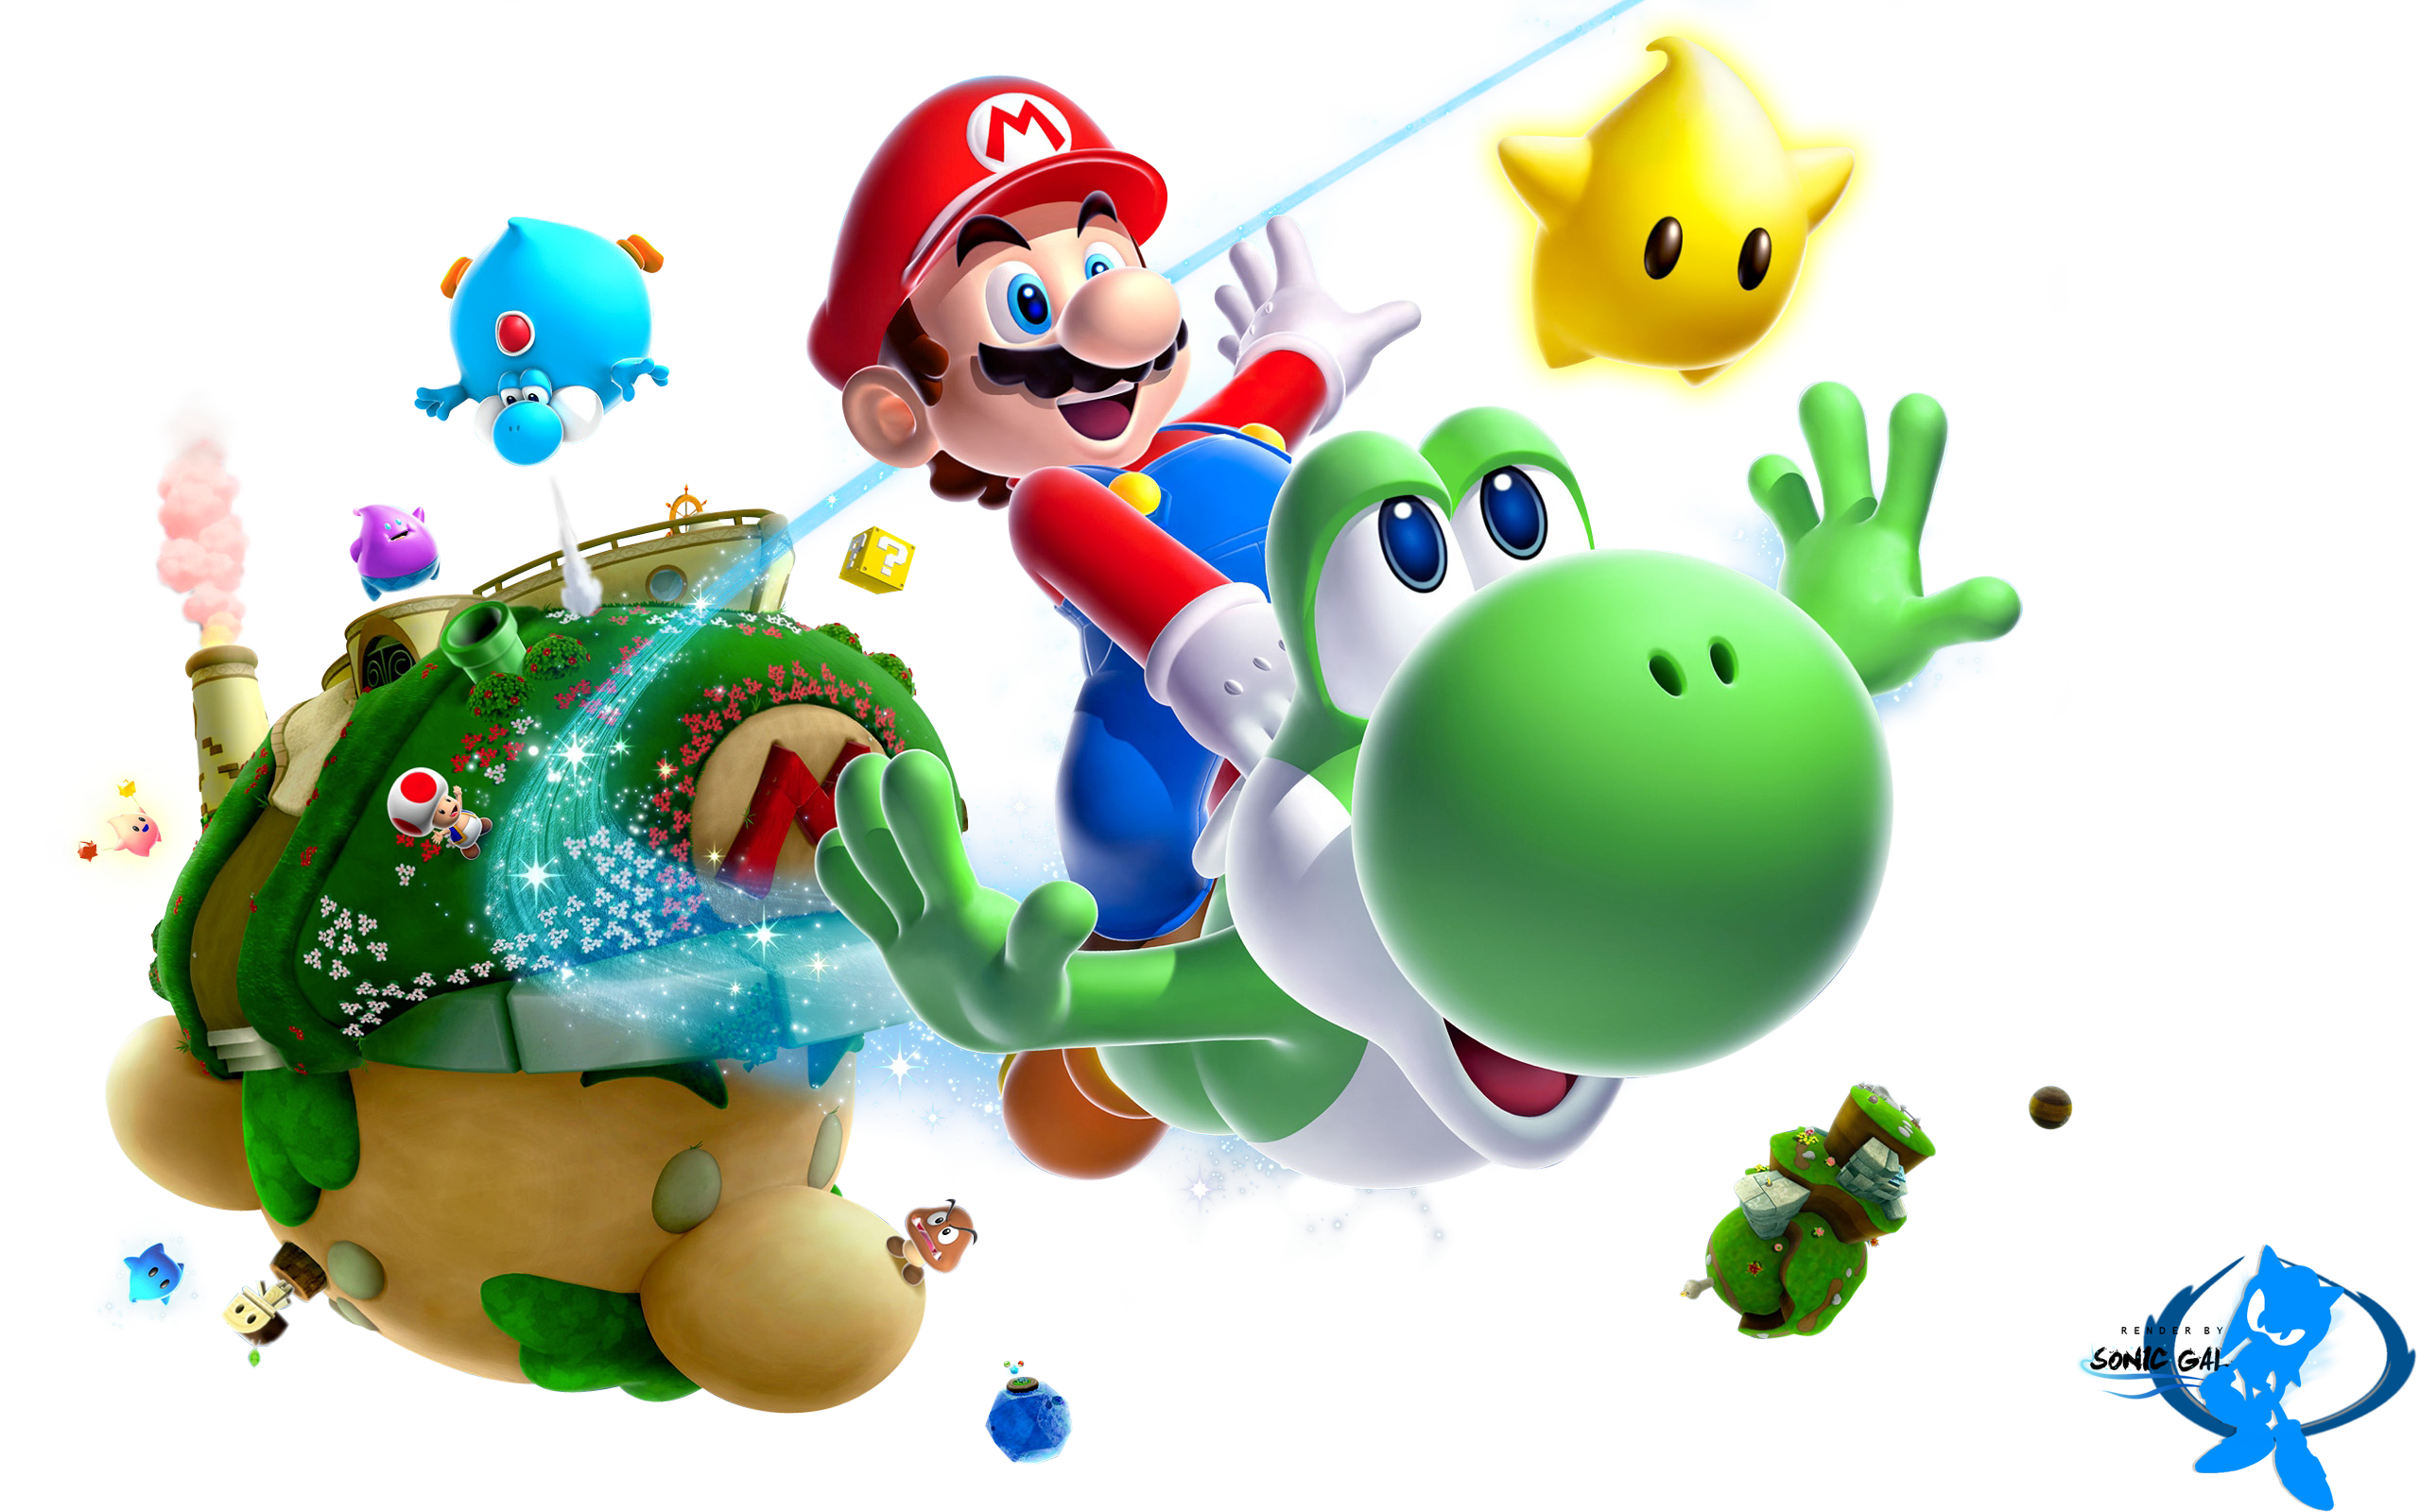 Hd wallpaper png - Pin Super Mario Png Icons For Web On Pinterest